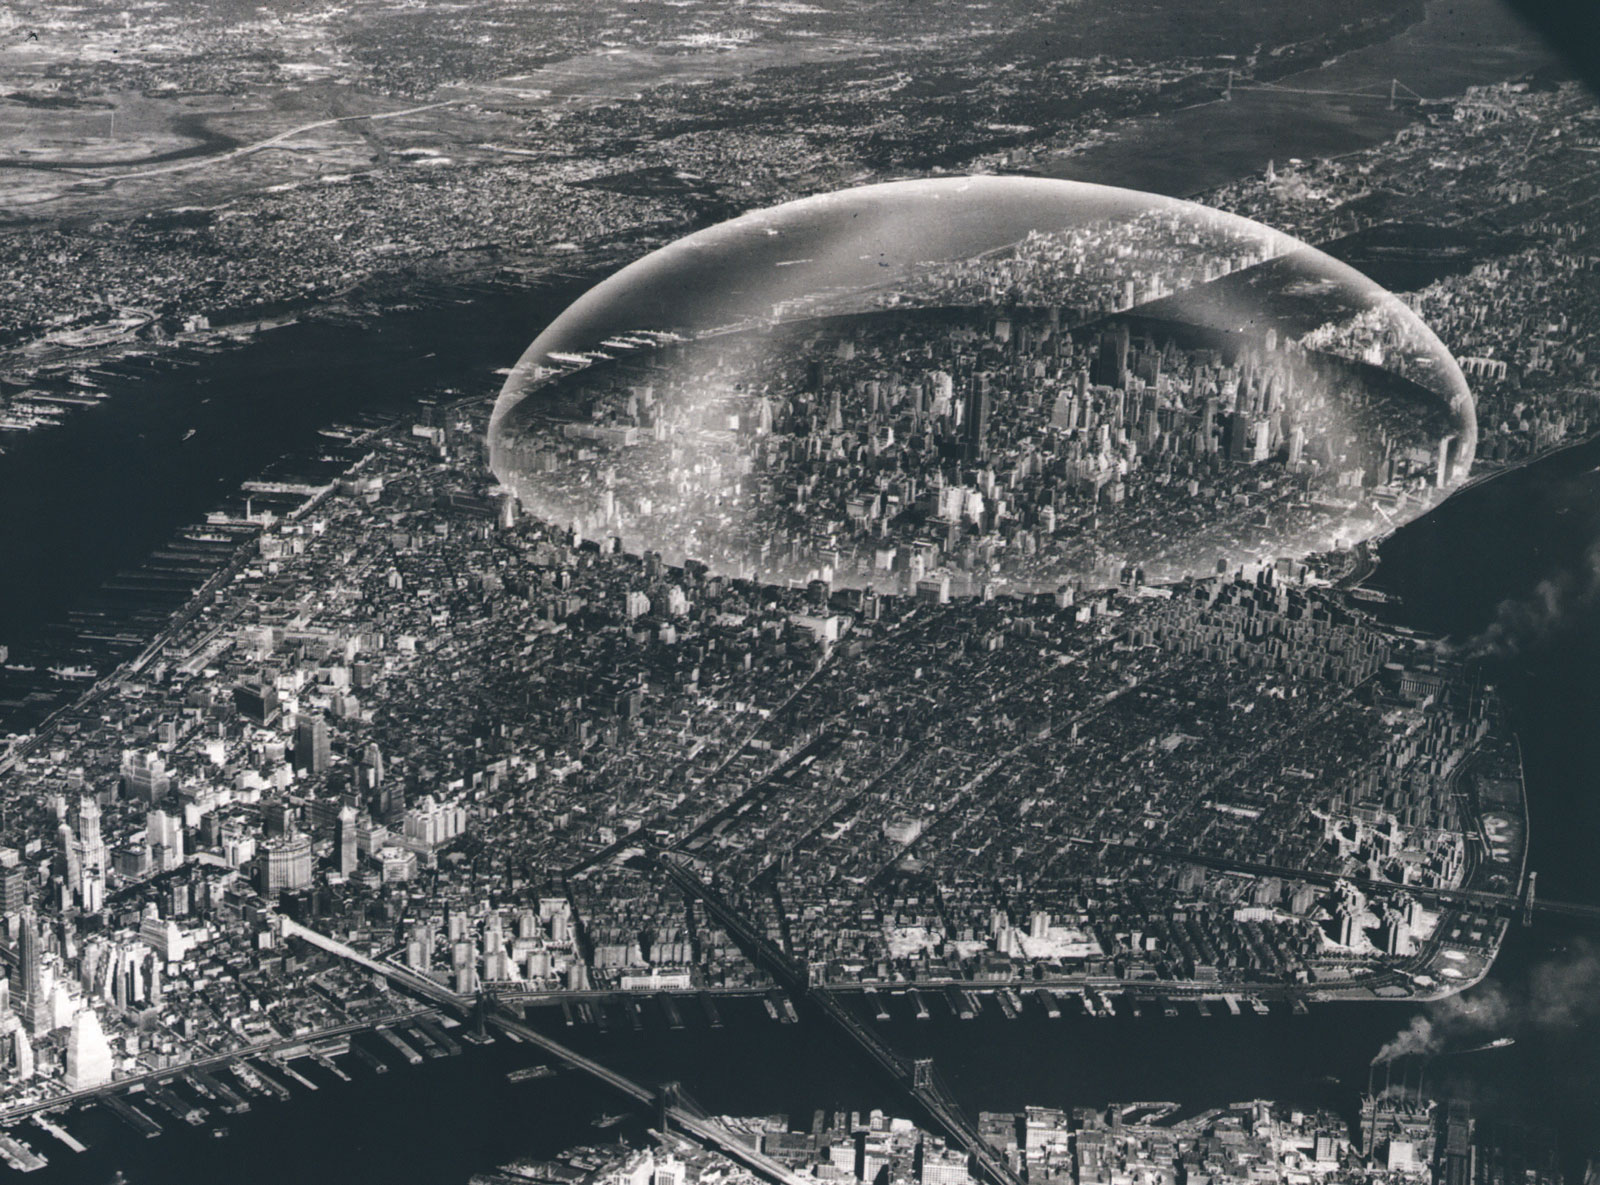 R. Buckminster Fuller's plan for a dome over Manhattan, 1961